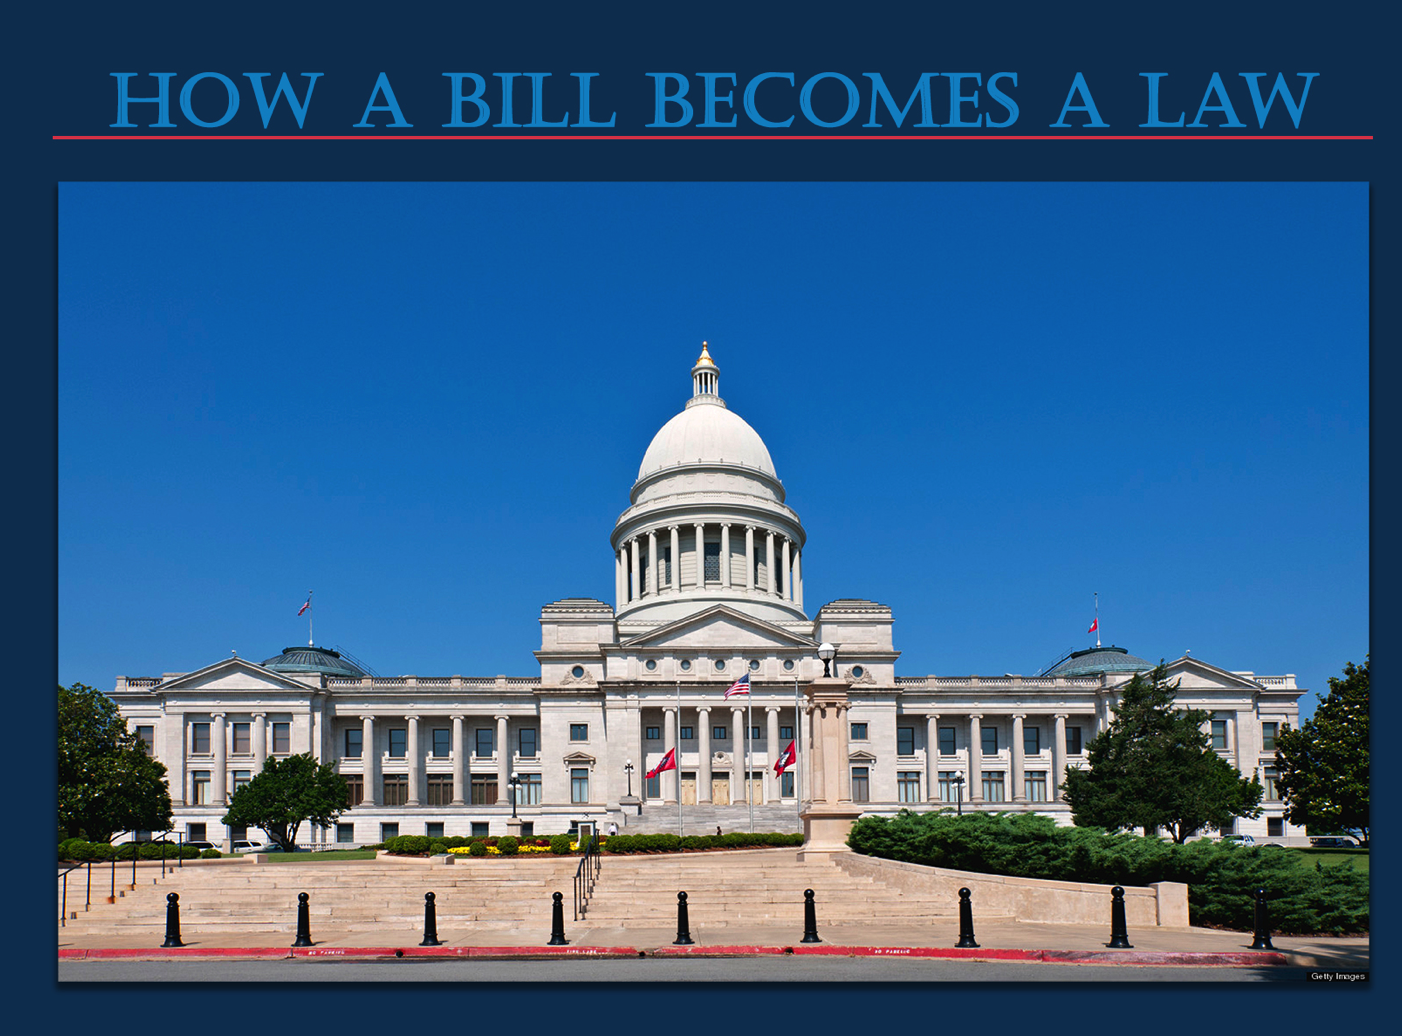 PowerPoint: How a Bill Becomes Law - Slides